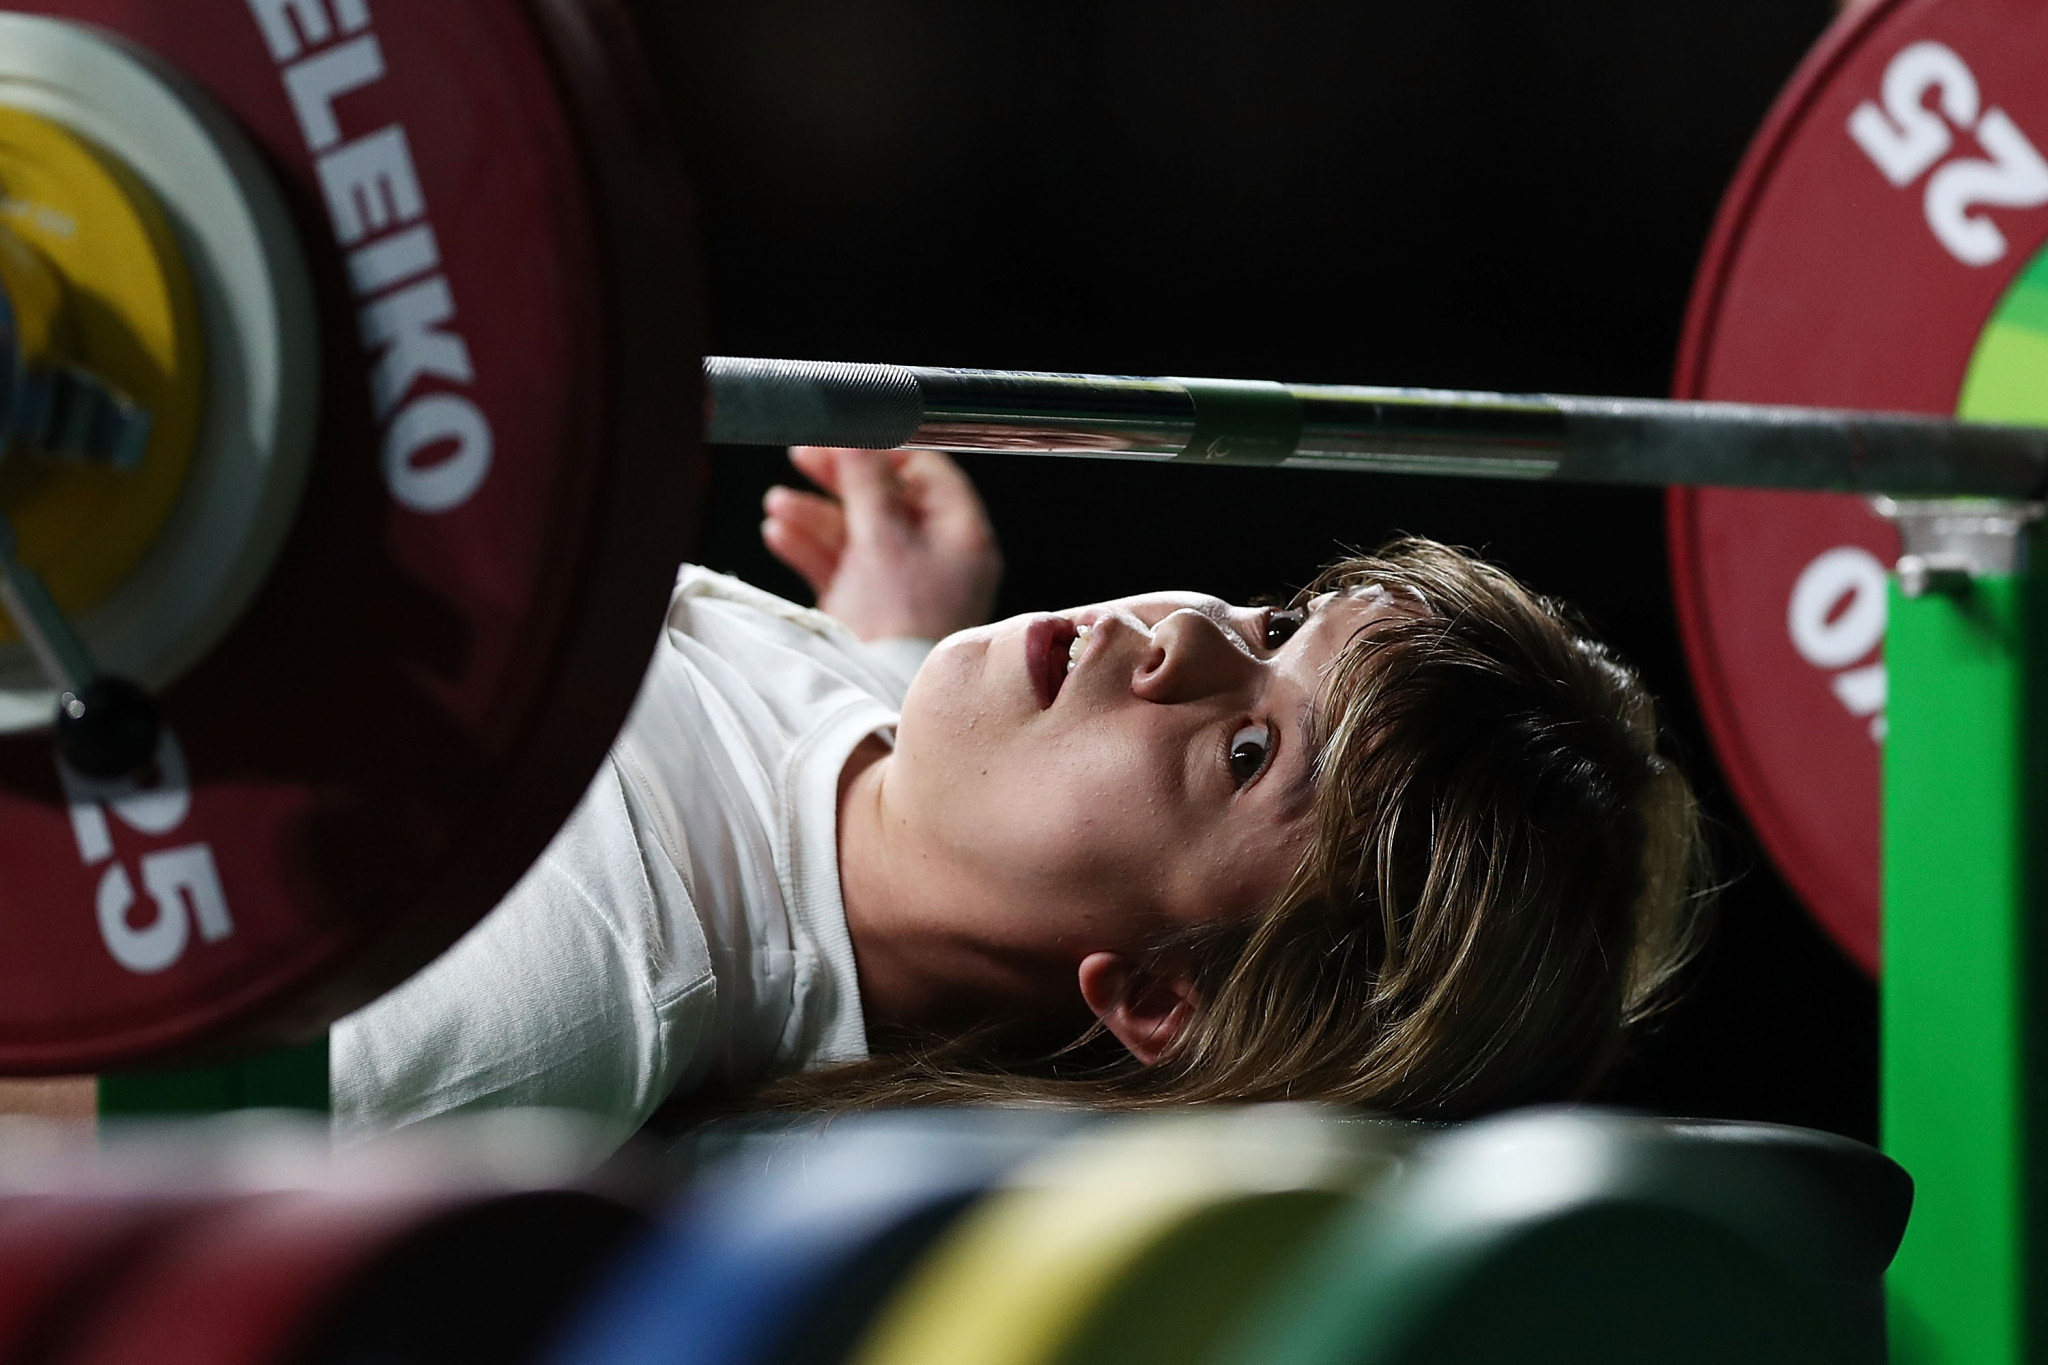 Paralympic champions Newson and Jawad in British team for home Powerlifting World Cup